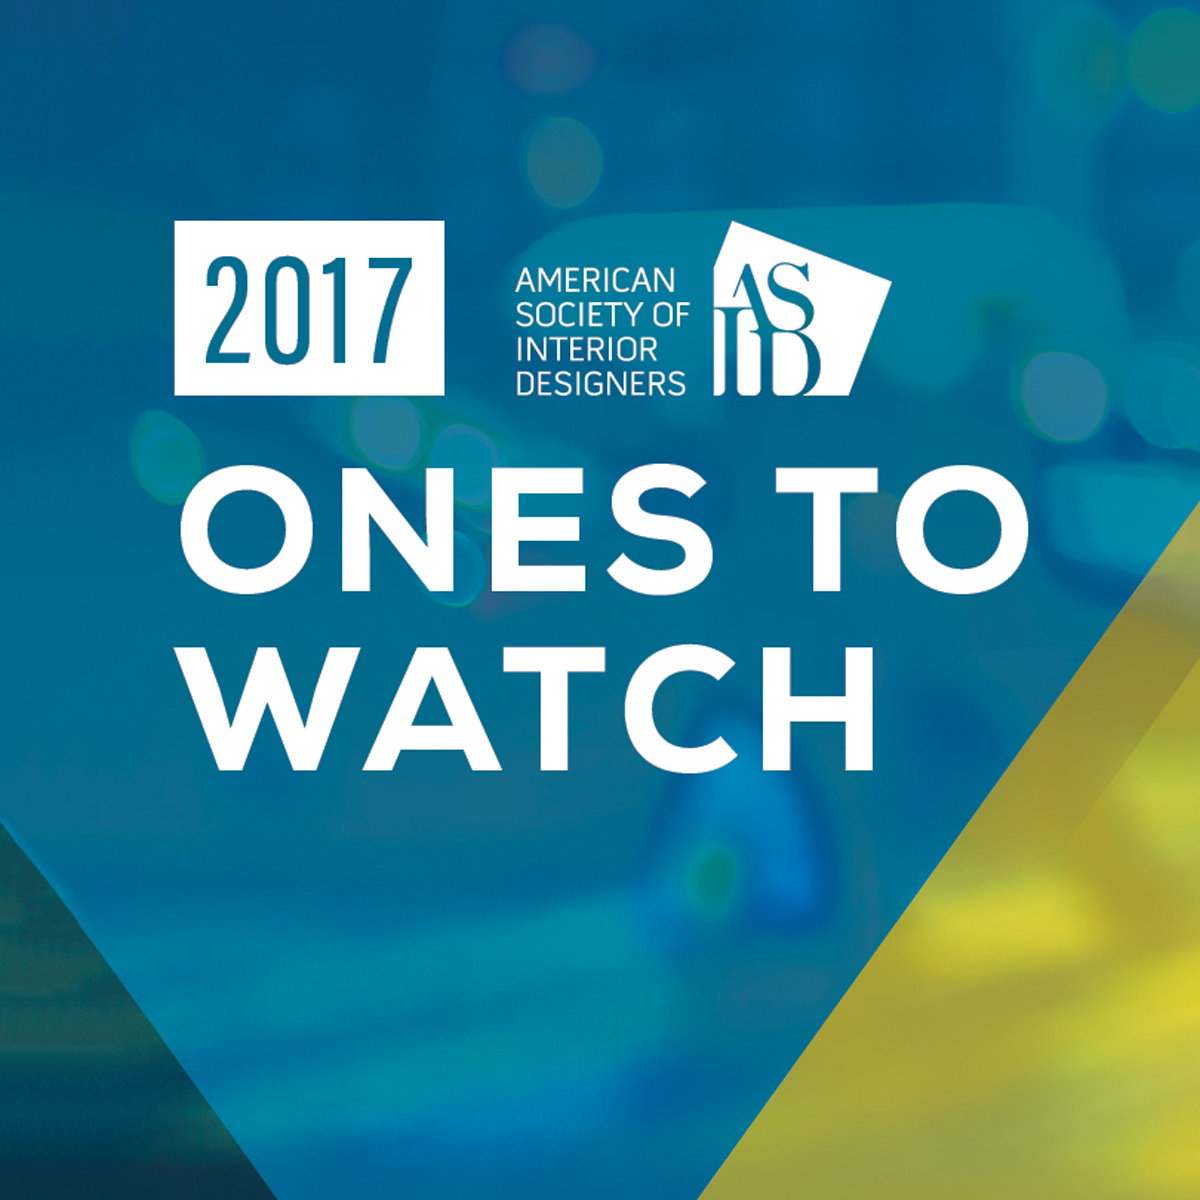 American Society of Interior Designers Launches Ones to Watch Program